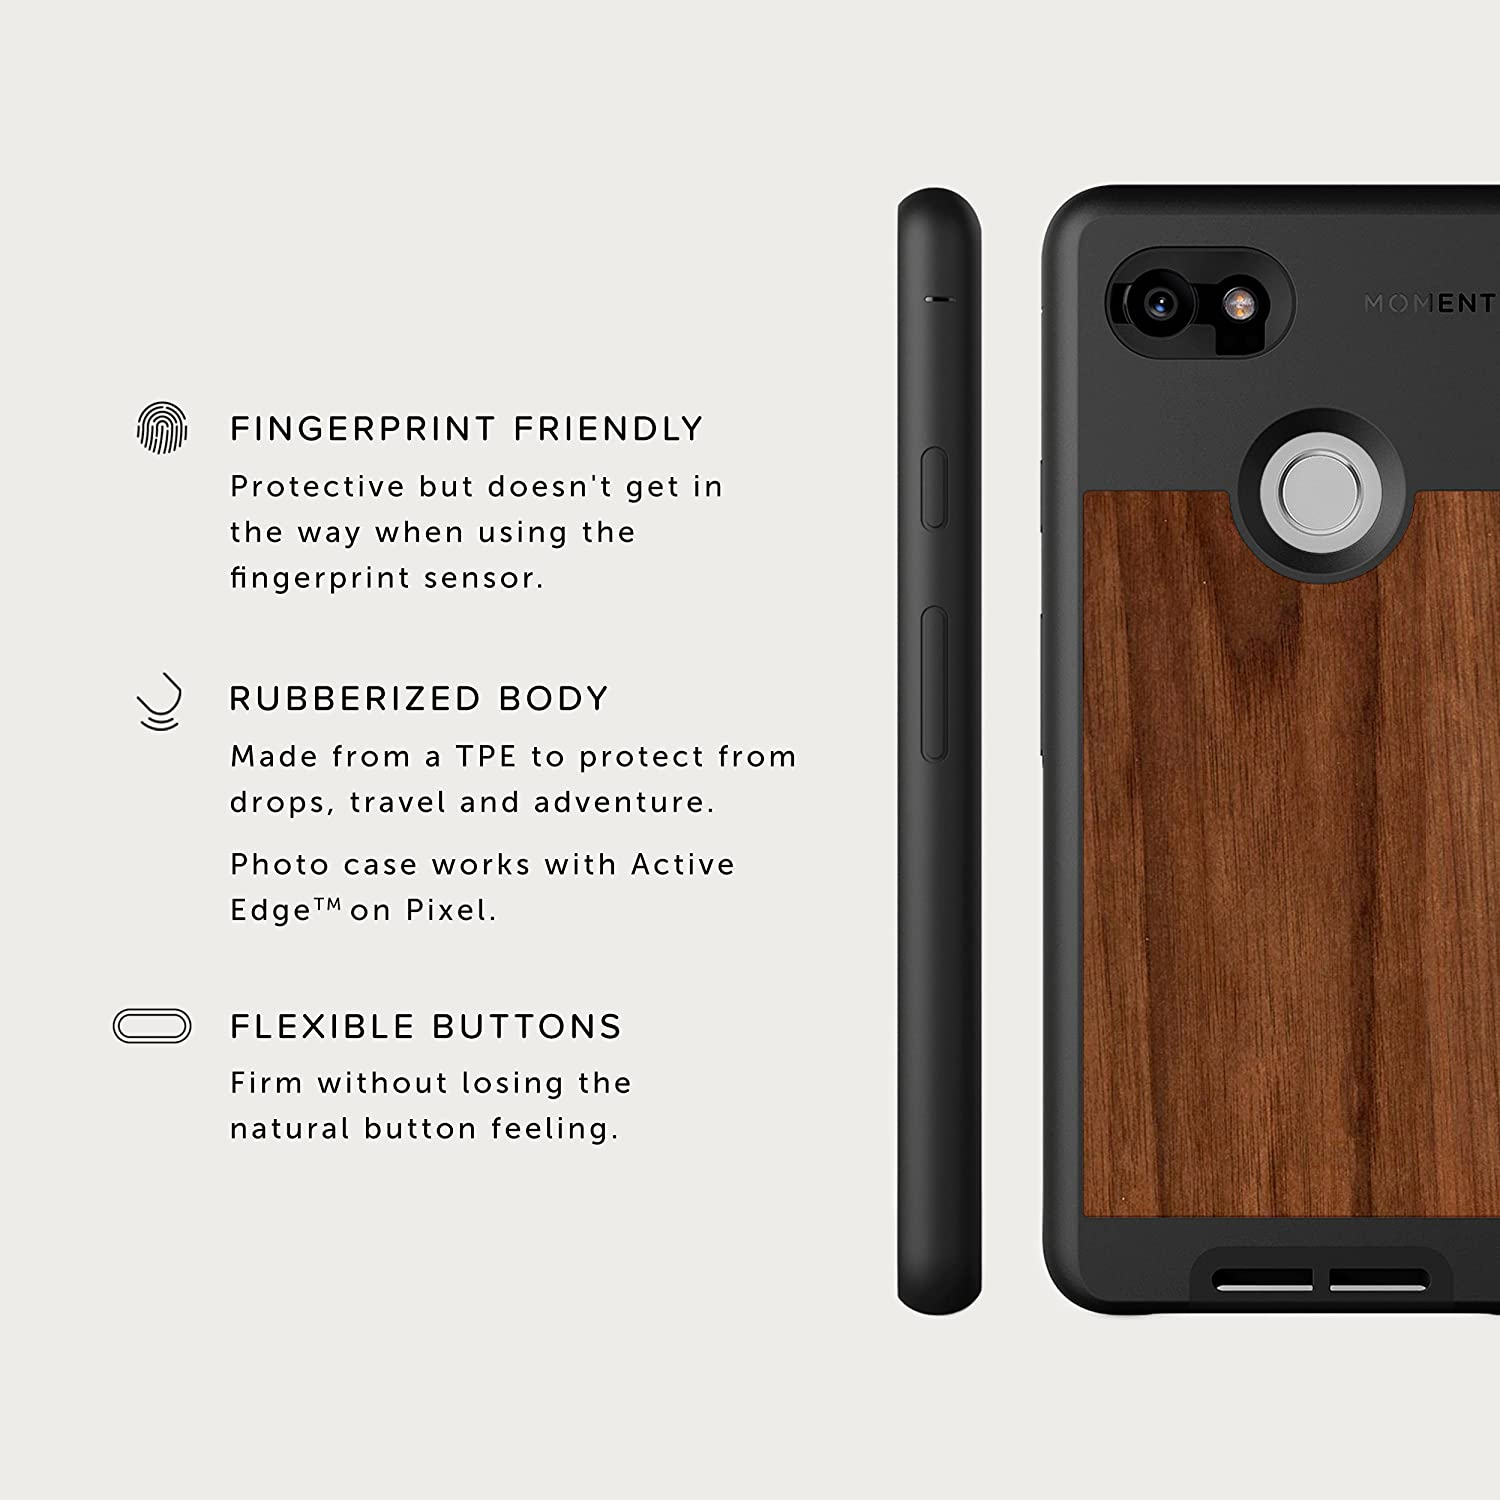 new styles c9a6a 72b3d Moment Pixel 2 XL Case Photo Case in Walnut Wood - Thin, Protective, Wrist  Strap Friendly case for Camera Lovers.